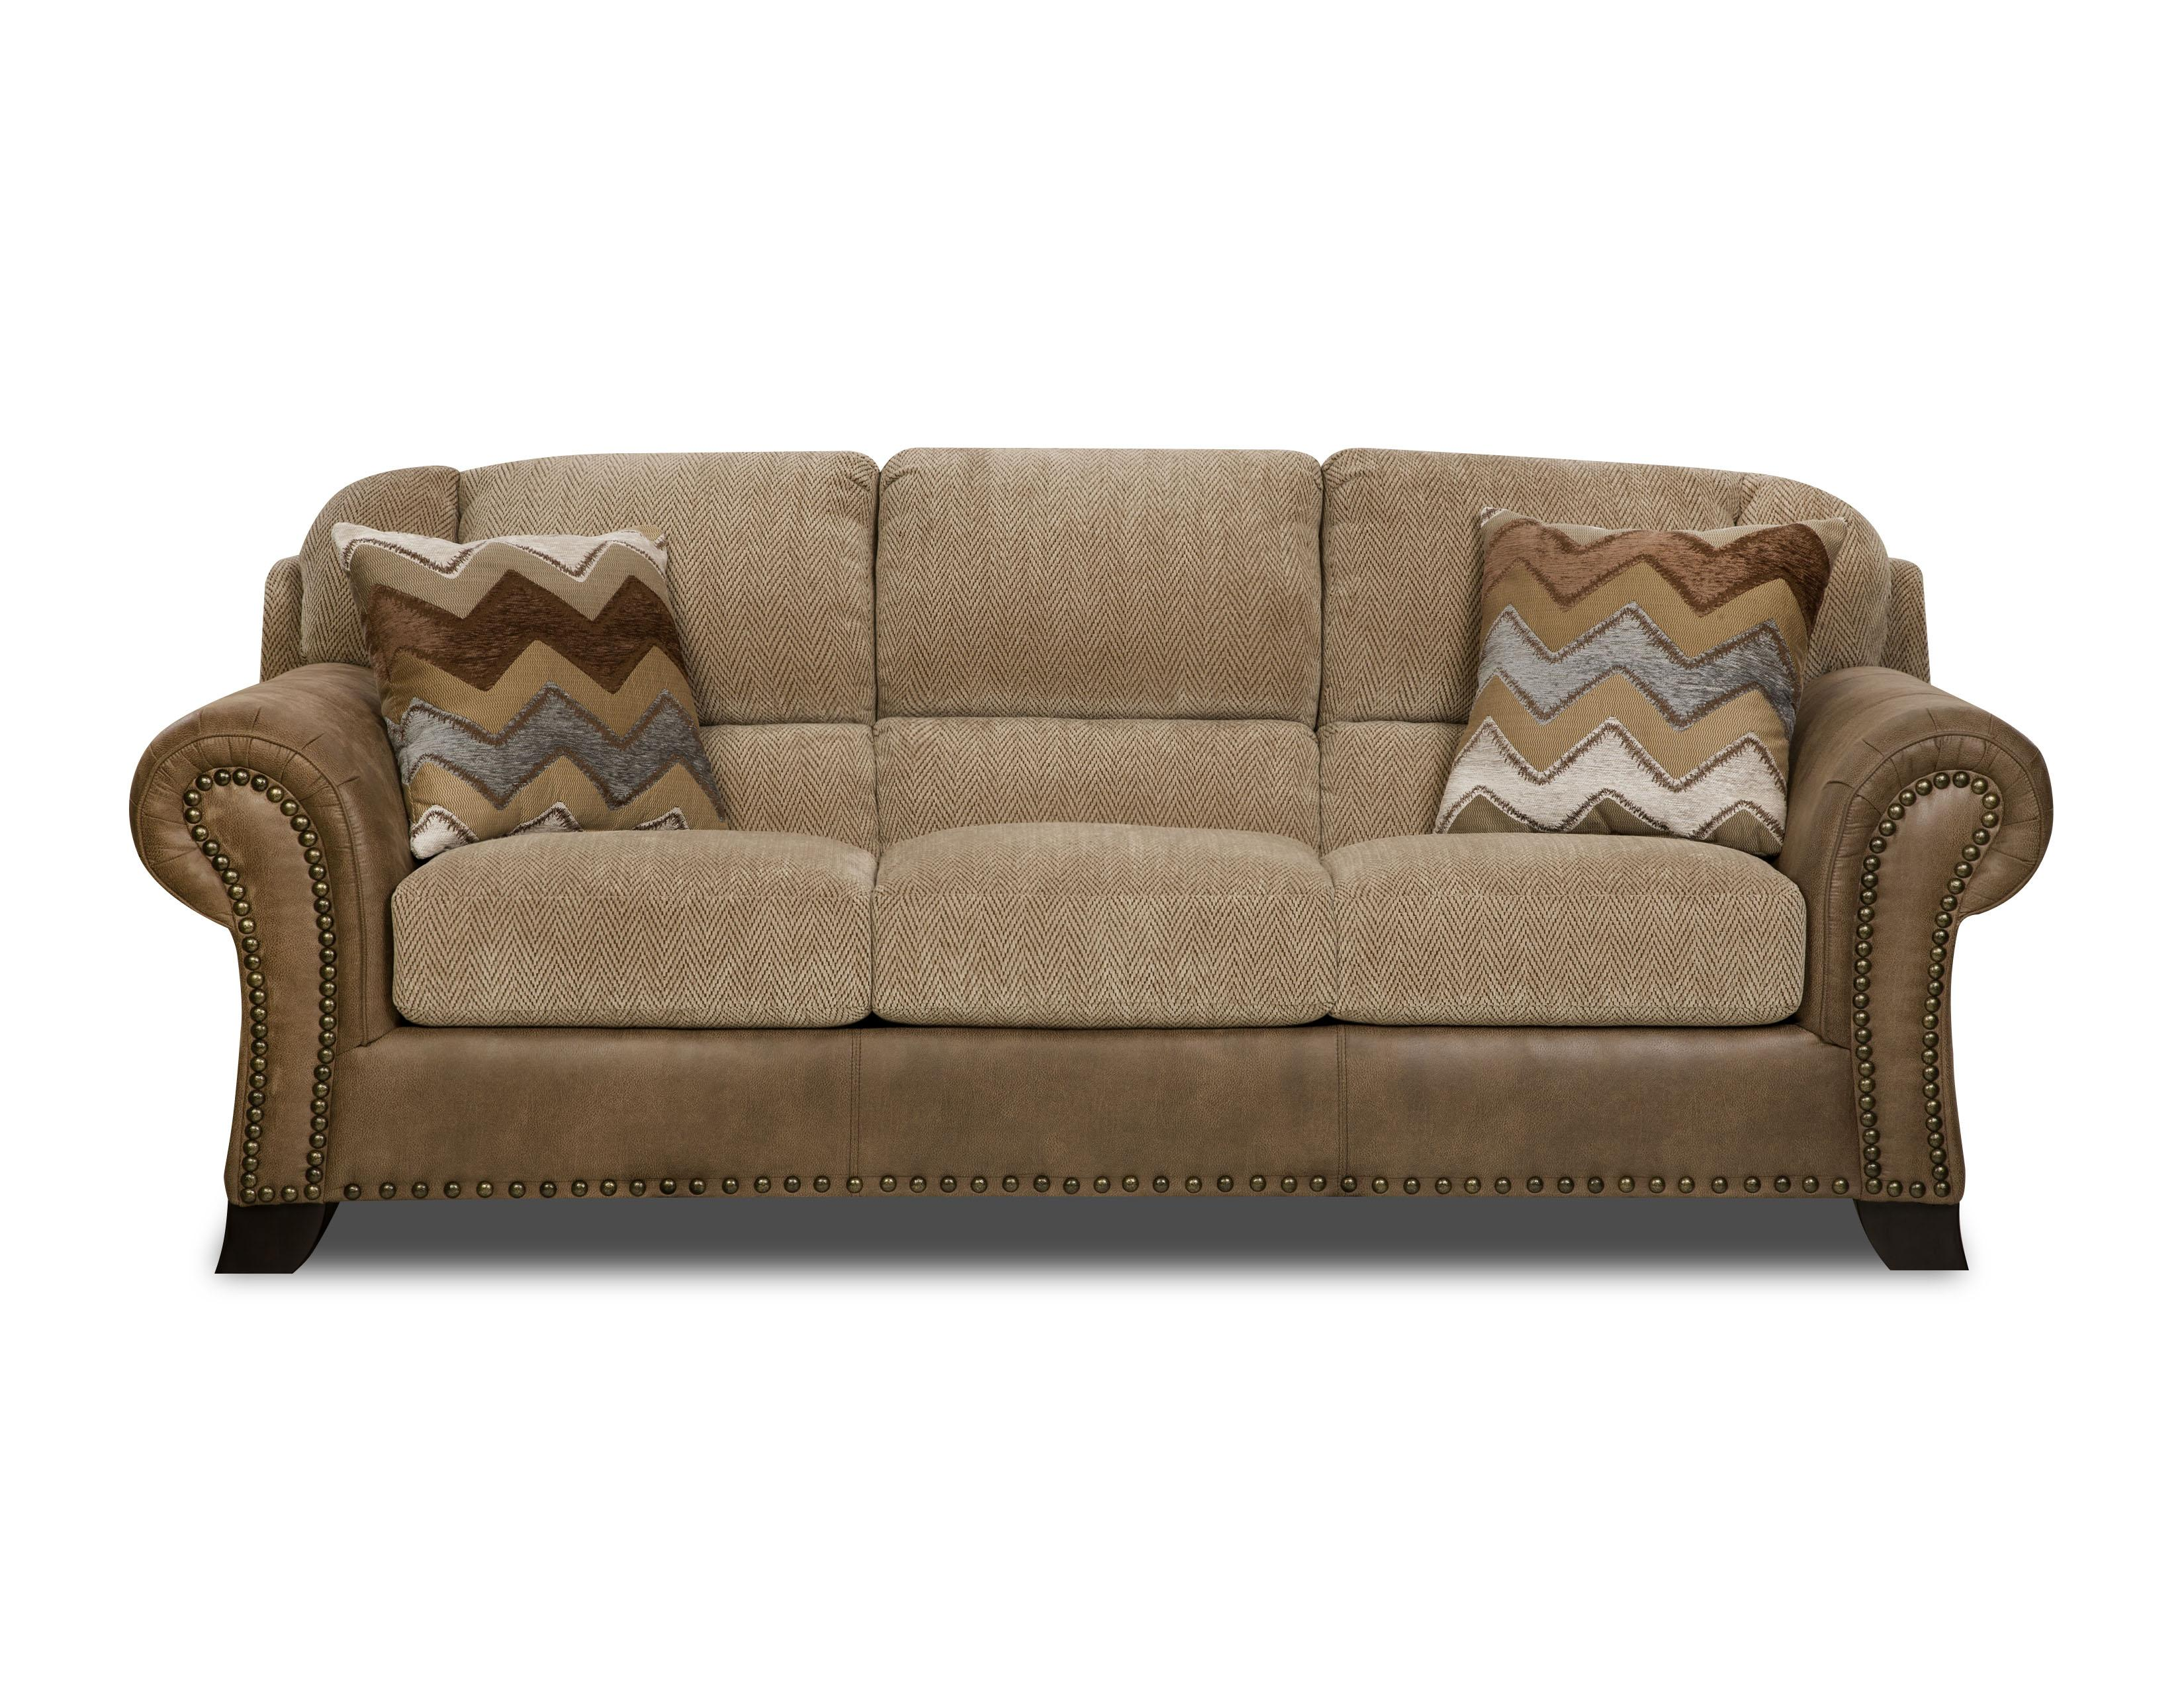 27A0 Sofa by Corinthian at Story & Lee Furniture